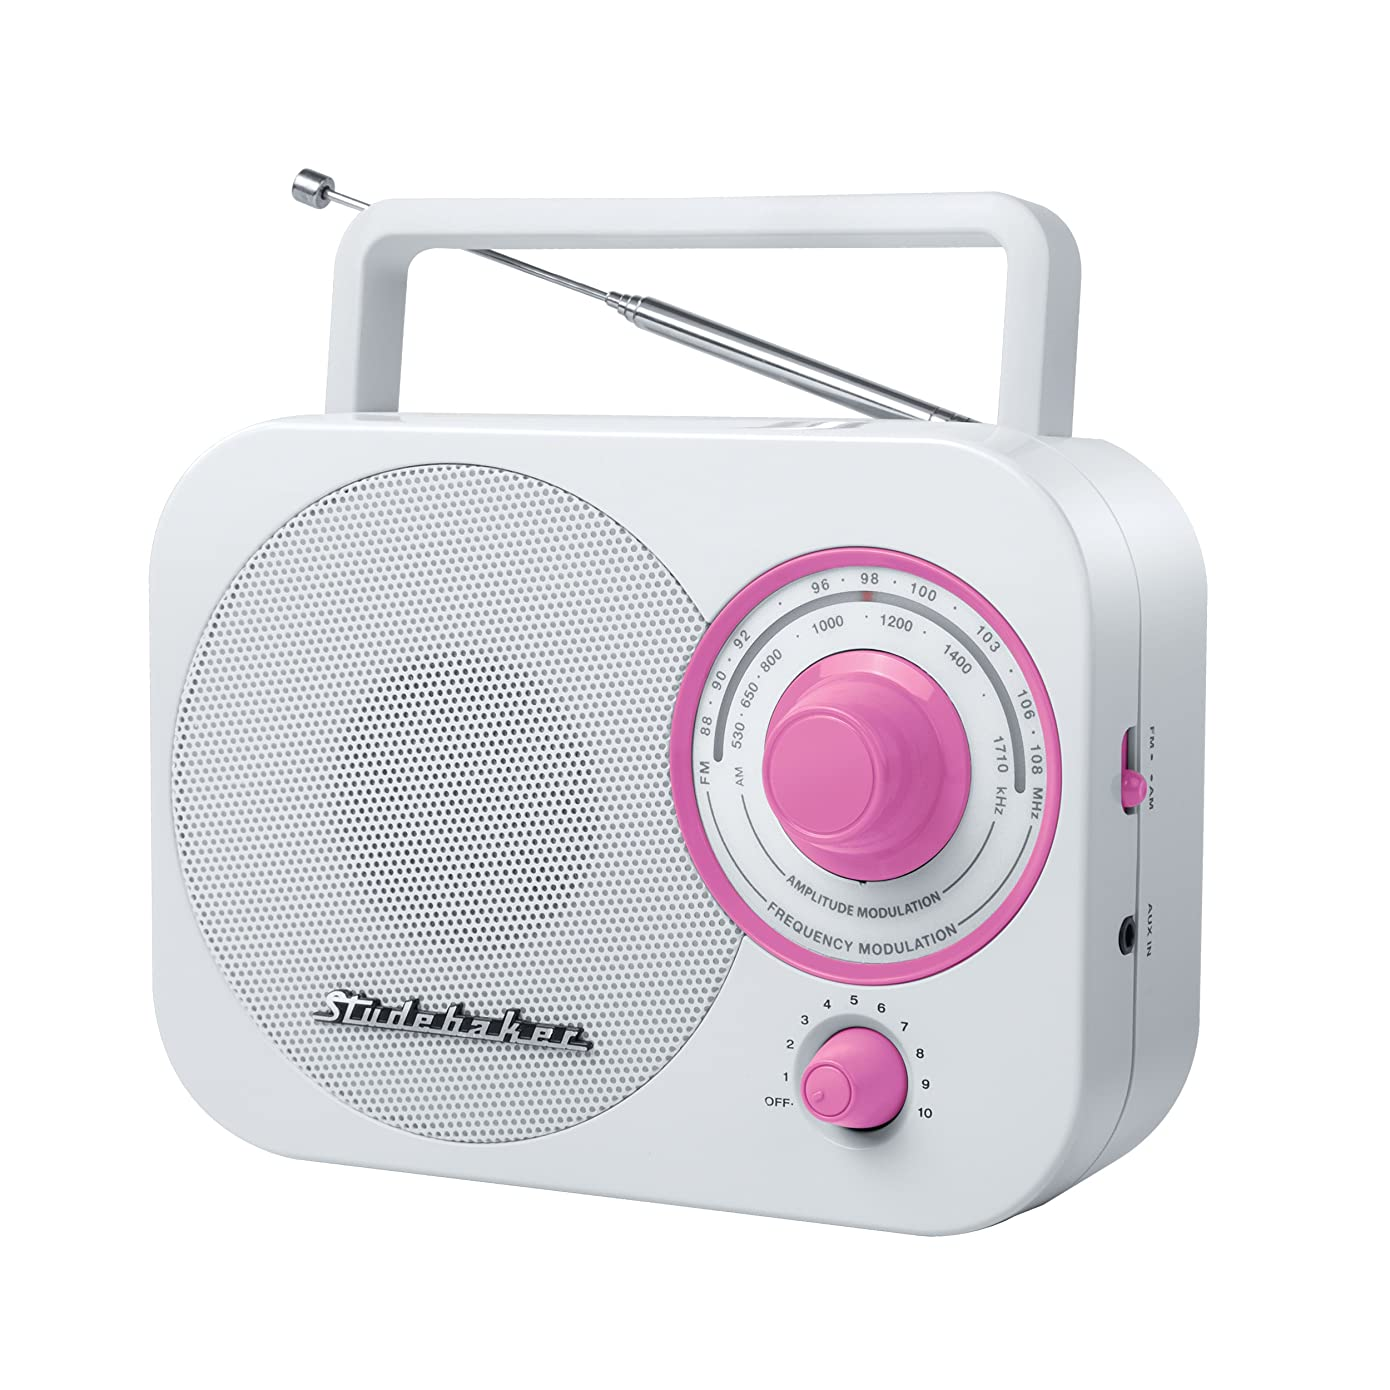 Studebaker Pink Radio SB2000 White/Pink Retro Classic Portable AM/FM Radio with Aux Input (Limited Edition Color)